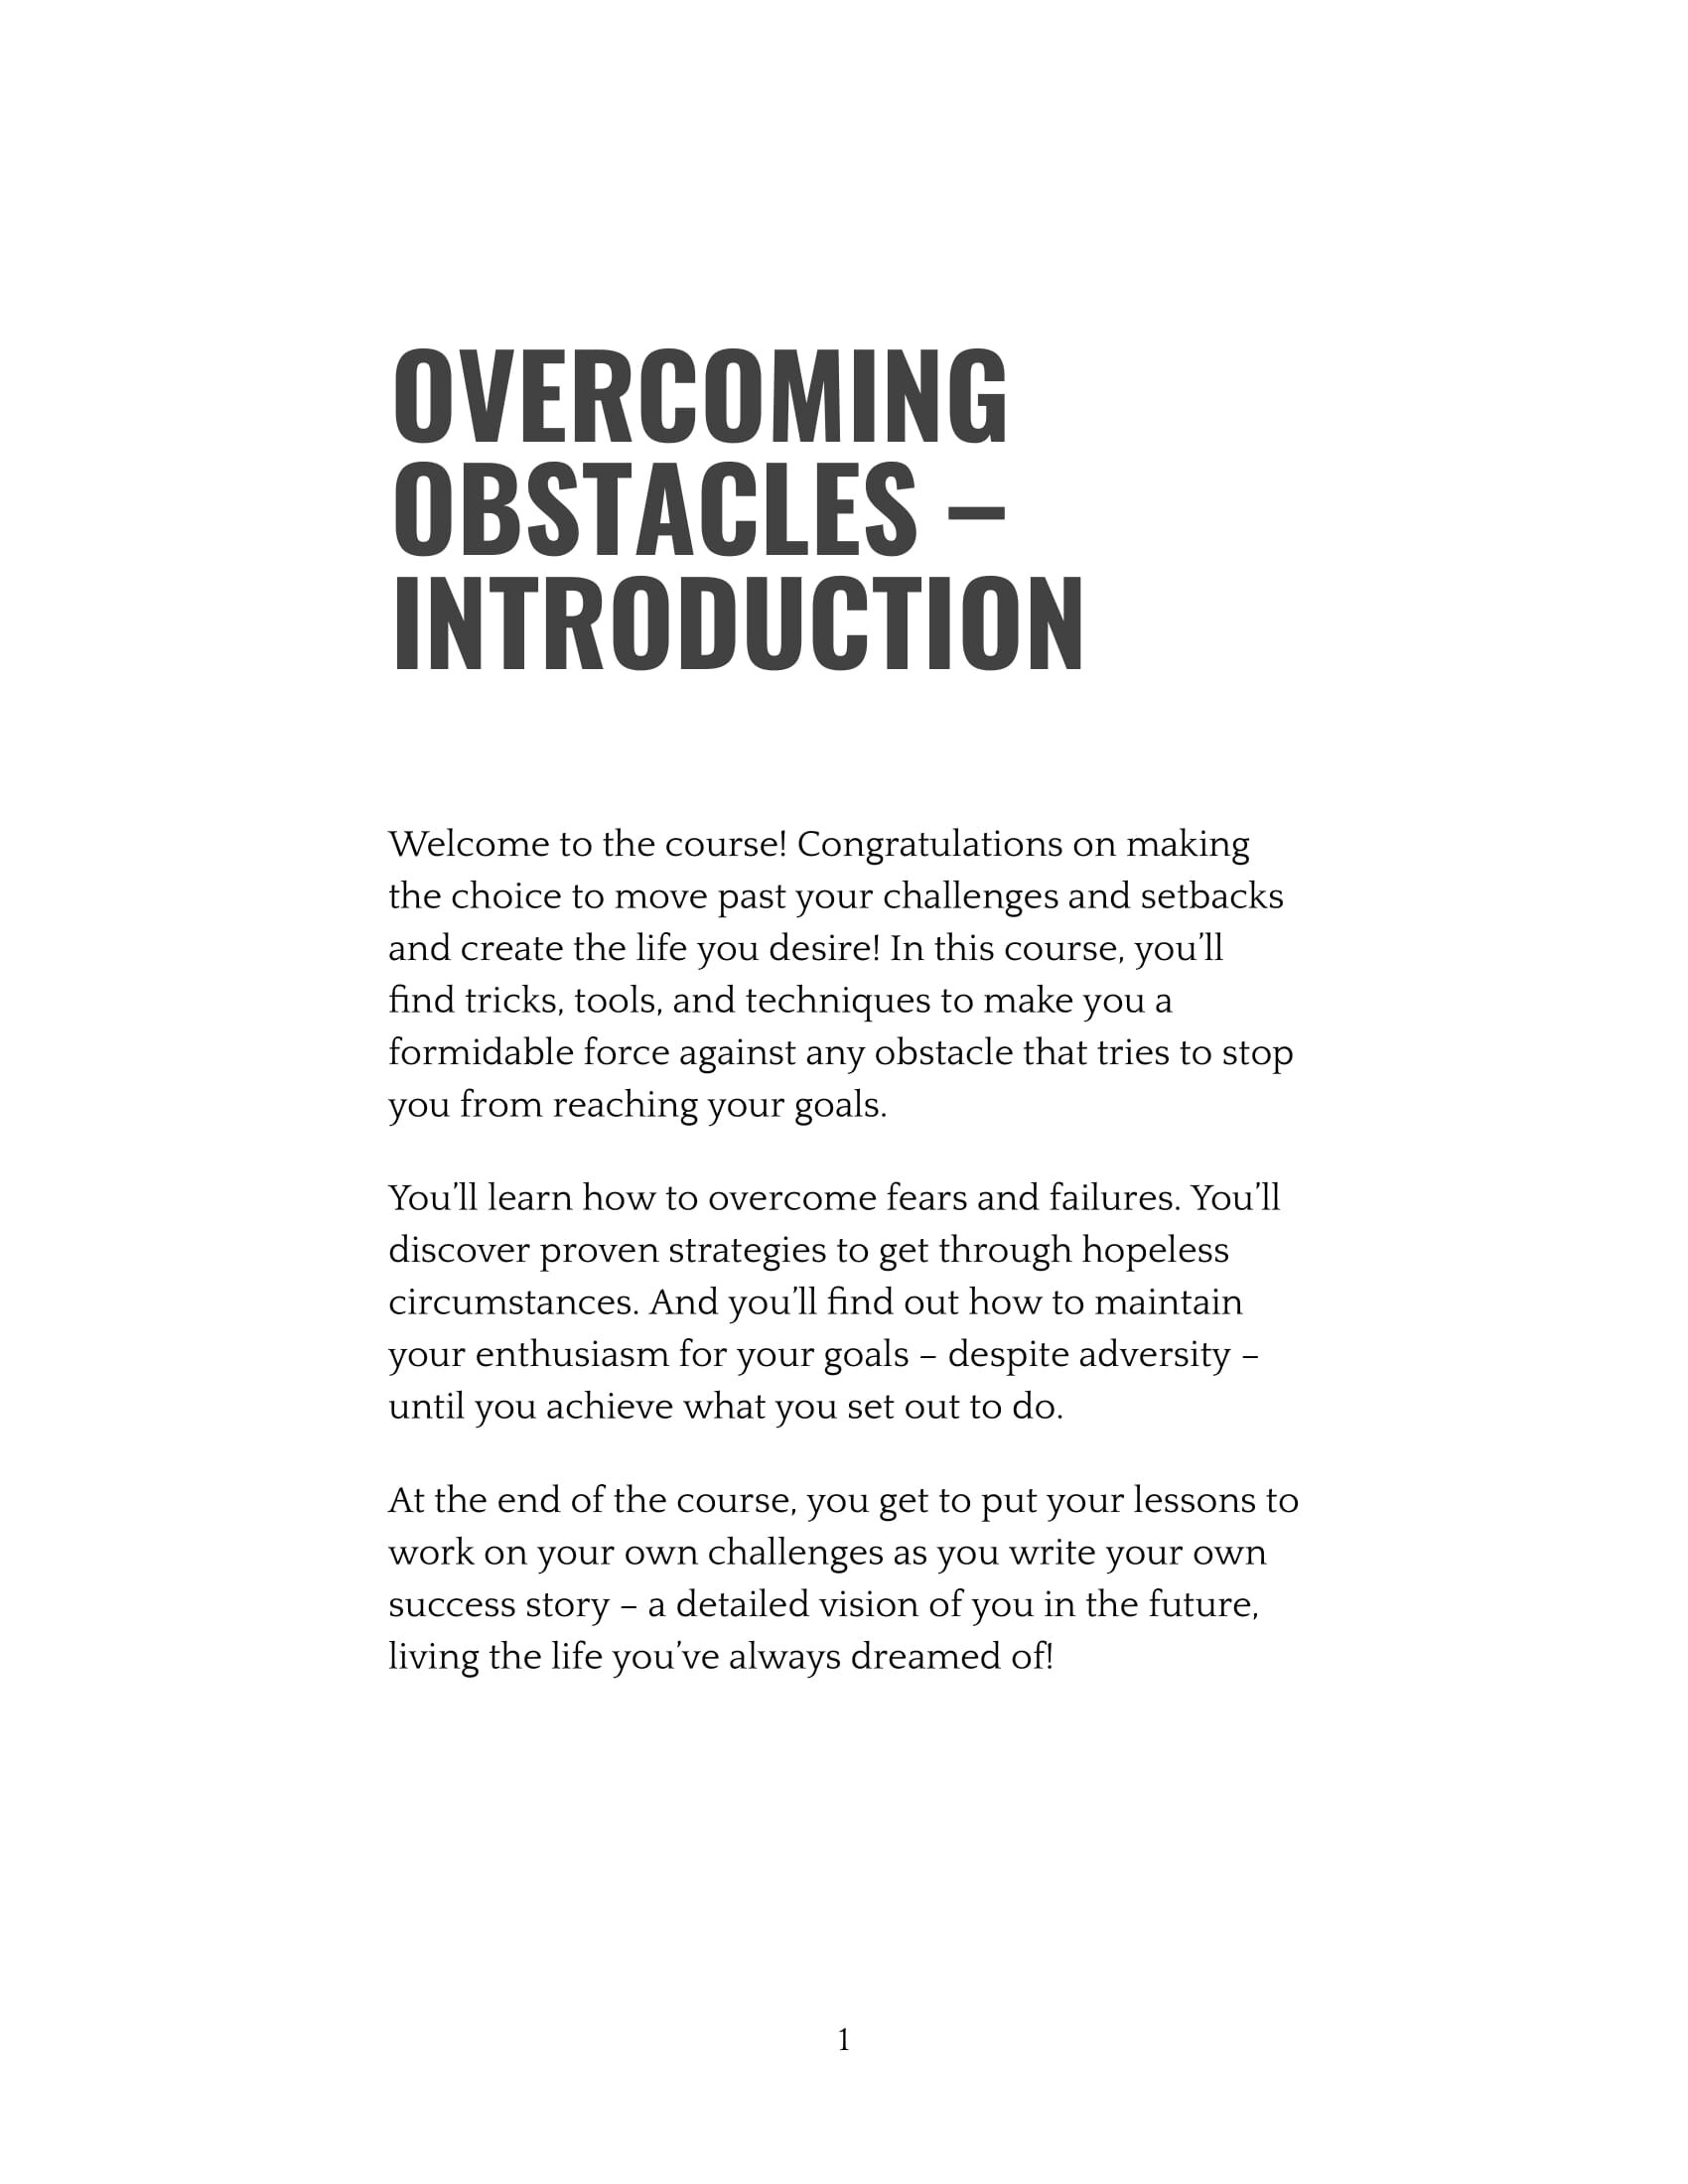 Overcoming Obstacles – Introduction-1.jpg